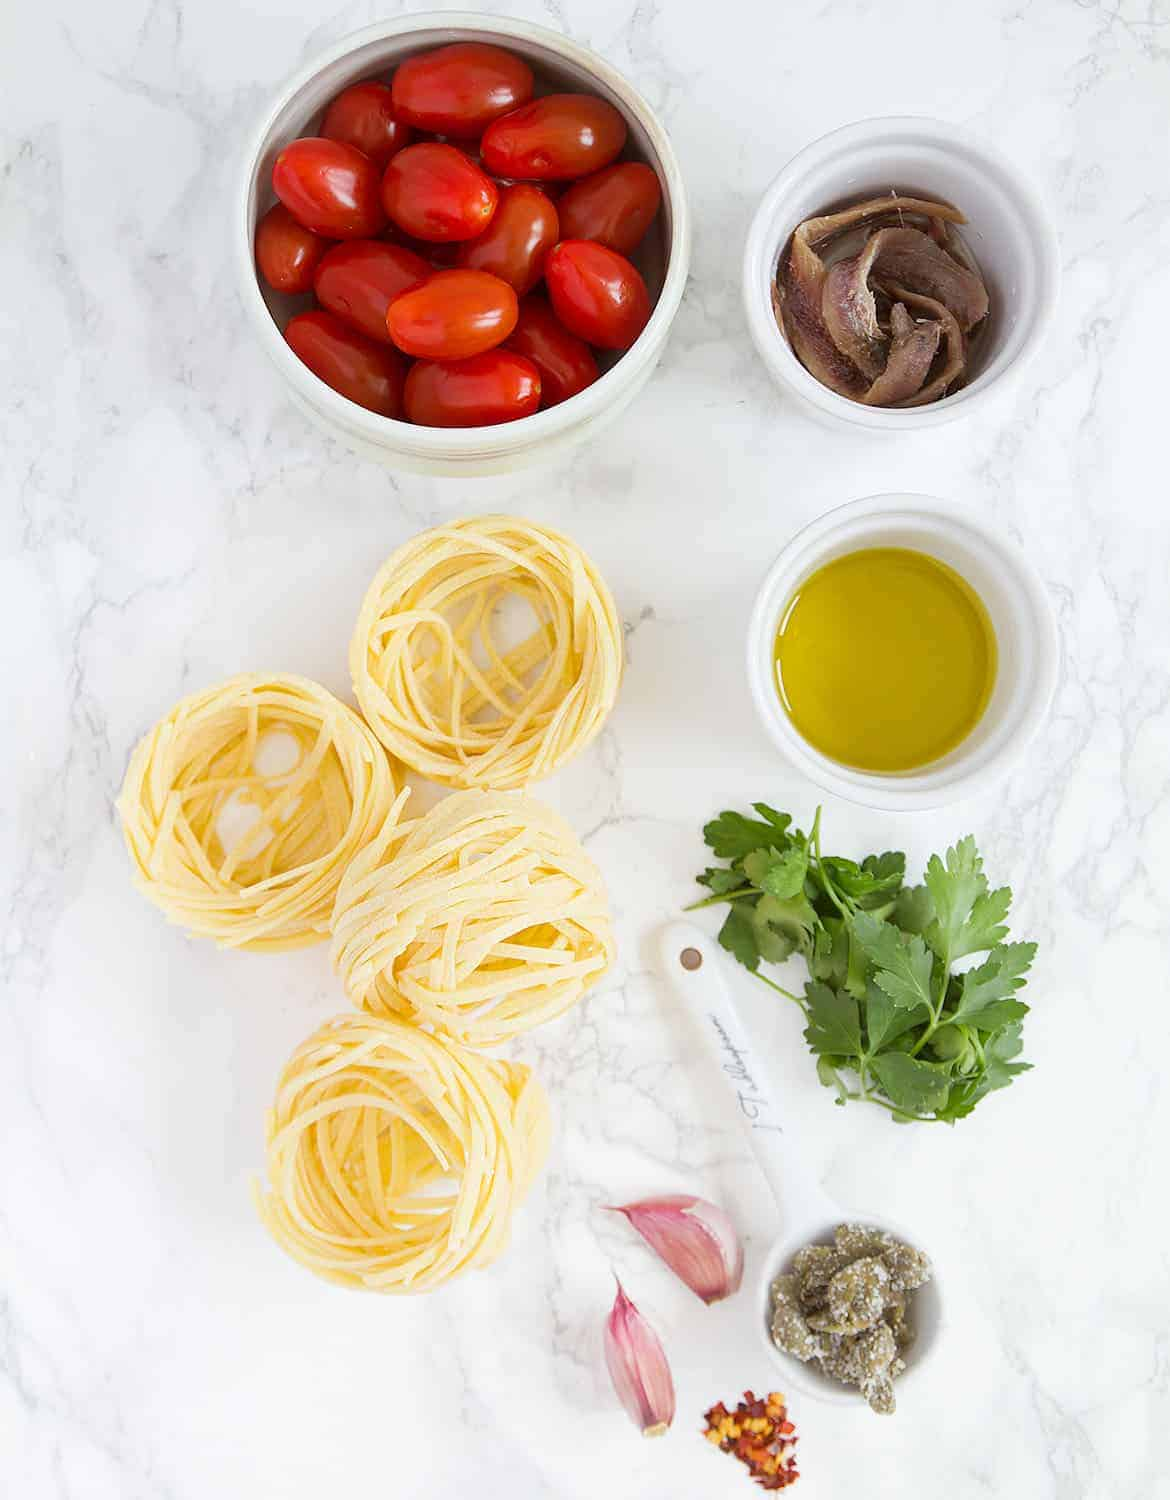 The ingredients for spaghetti alla puttanesca are arranged over a white table.